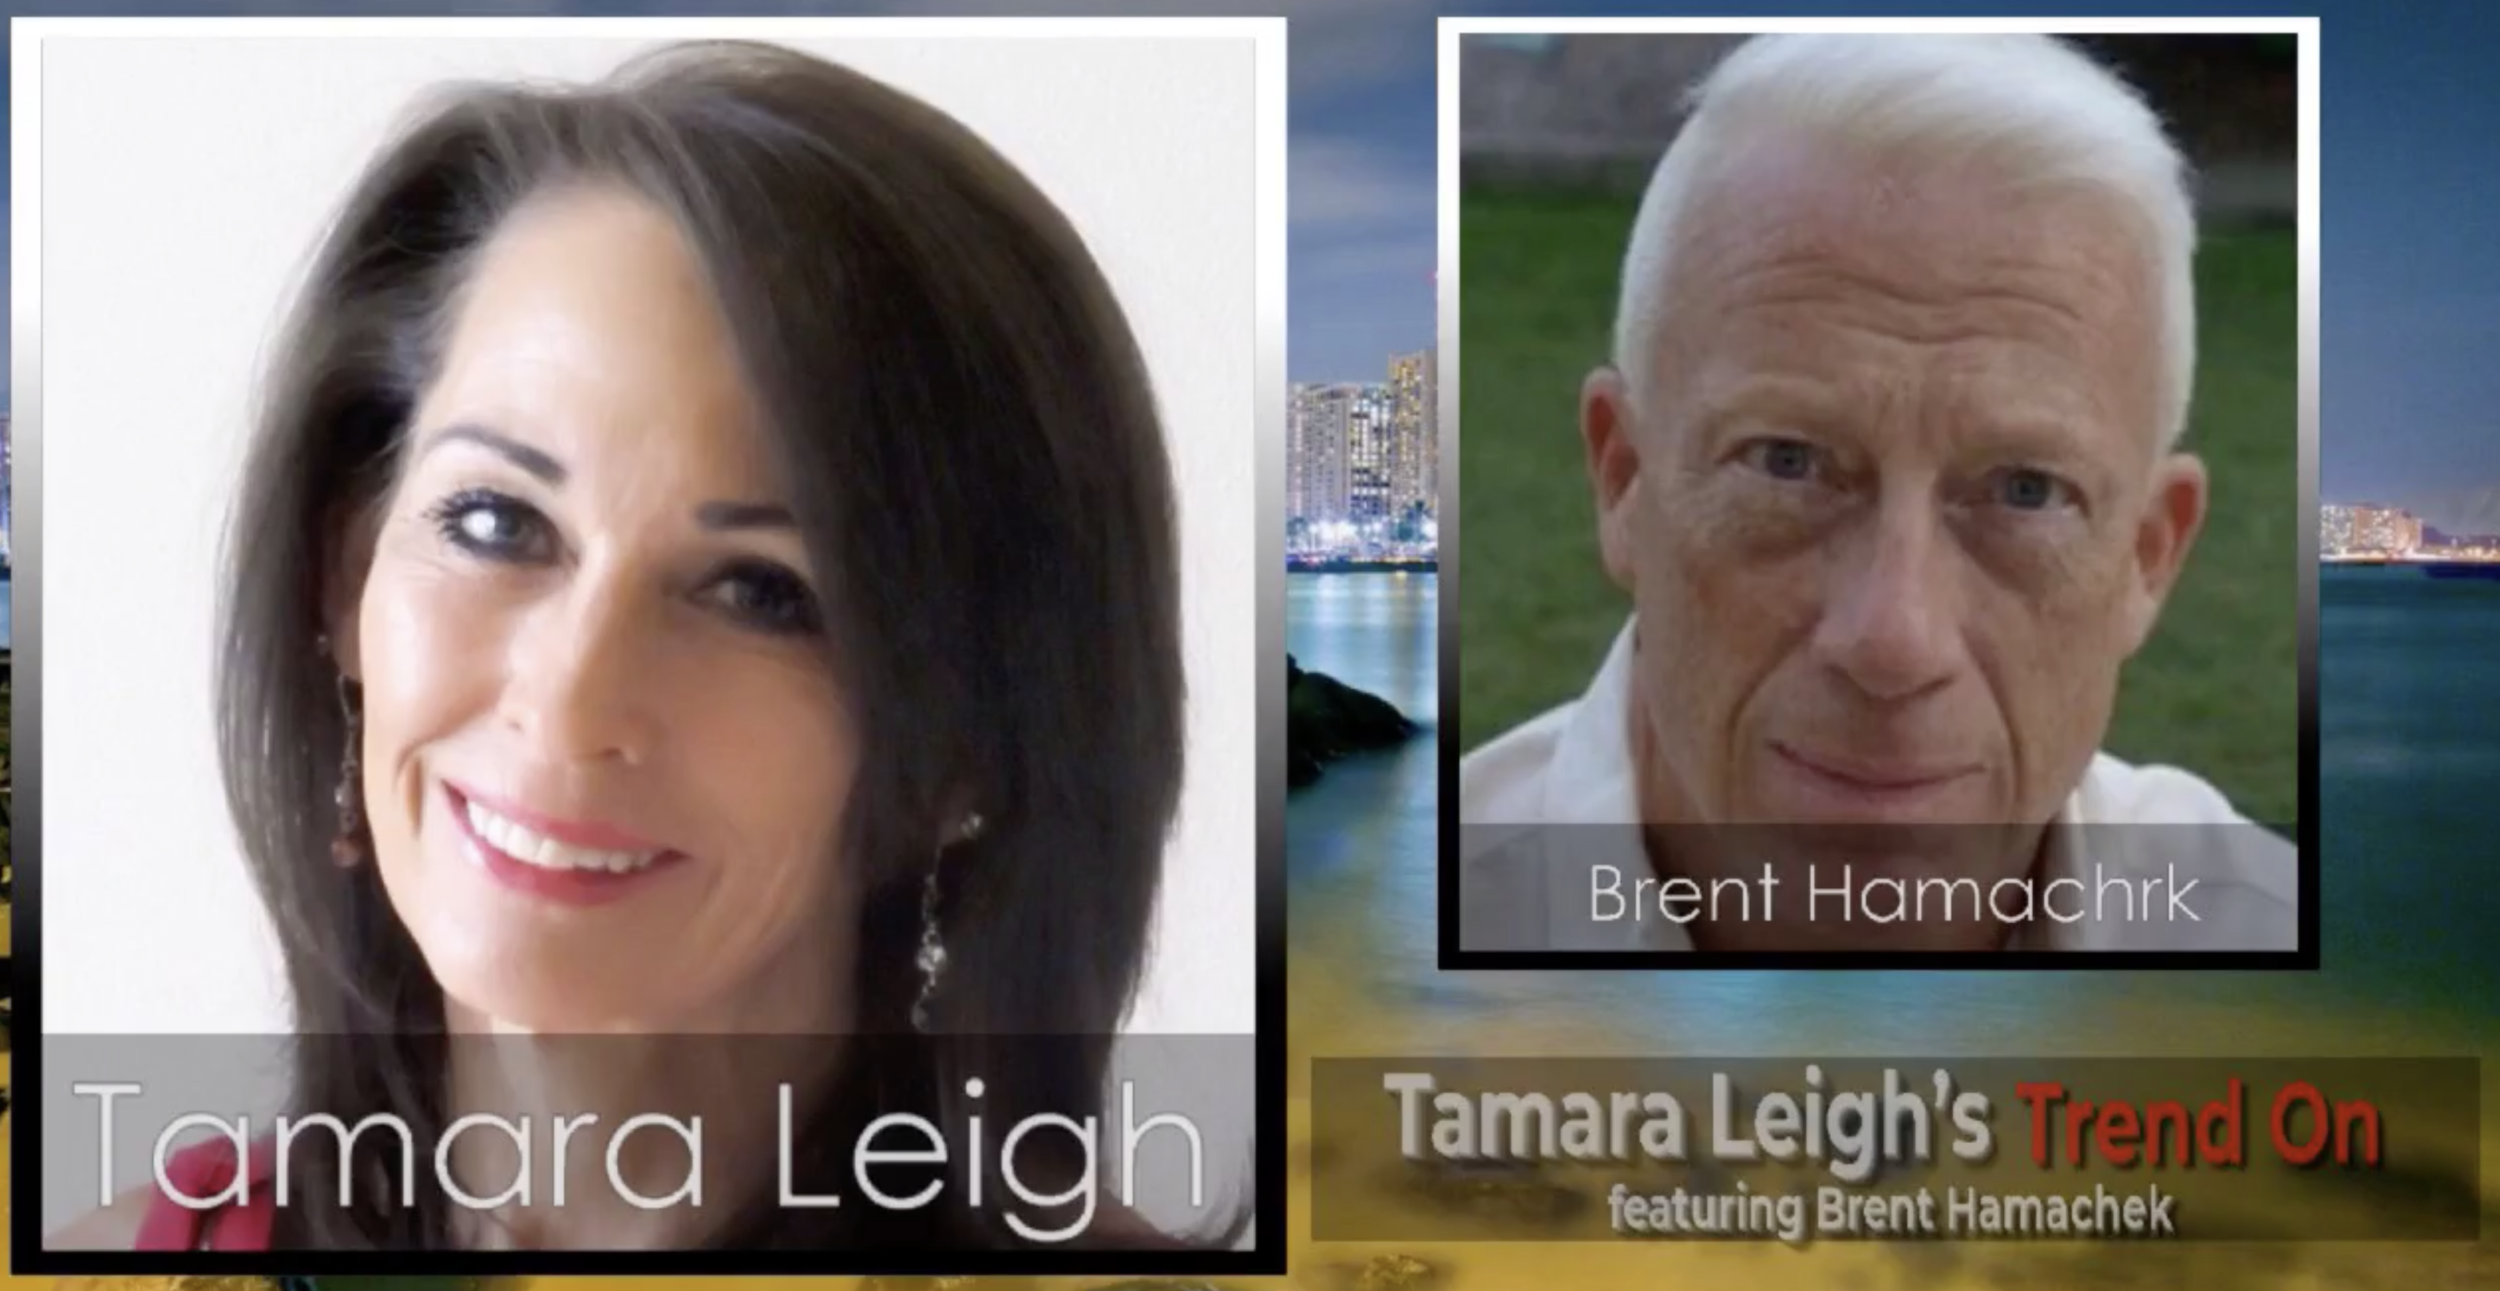 Tamara Leigh's Trend On - with Brent Hamachek with Pasquale Scopelliti